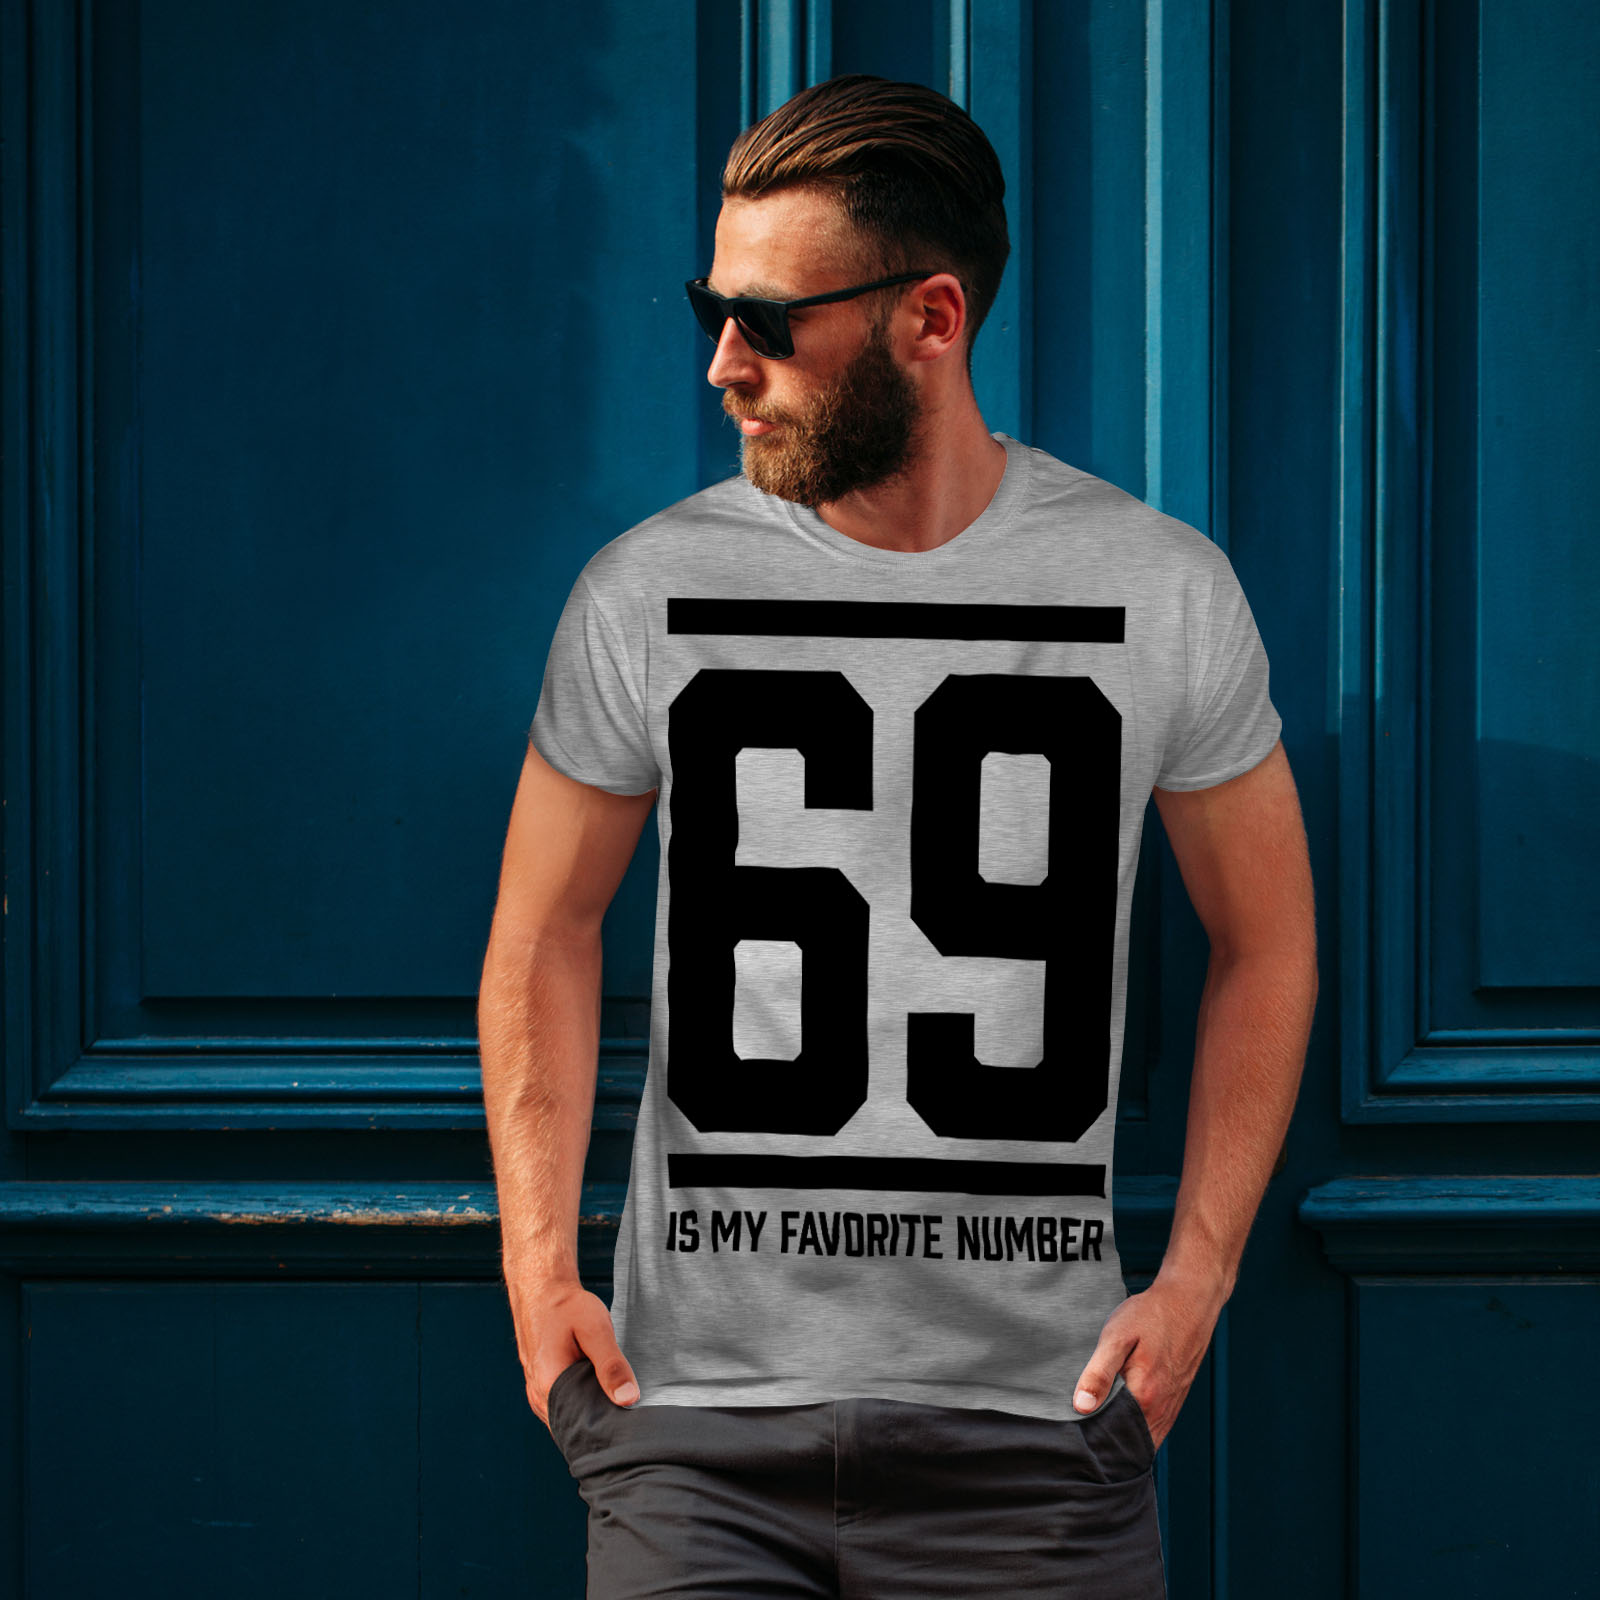 Wellcoda-69-Favorite-Number-Mens-T-shirt-Sports-Graphic-Design-Printed-Tee thumbnail 16